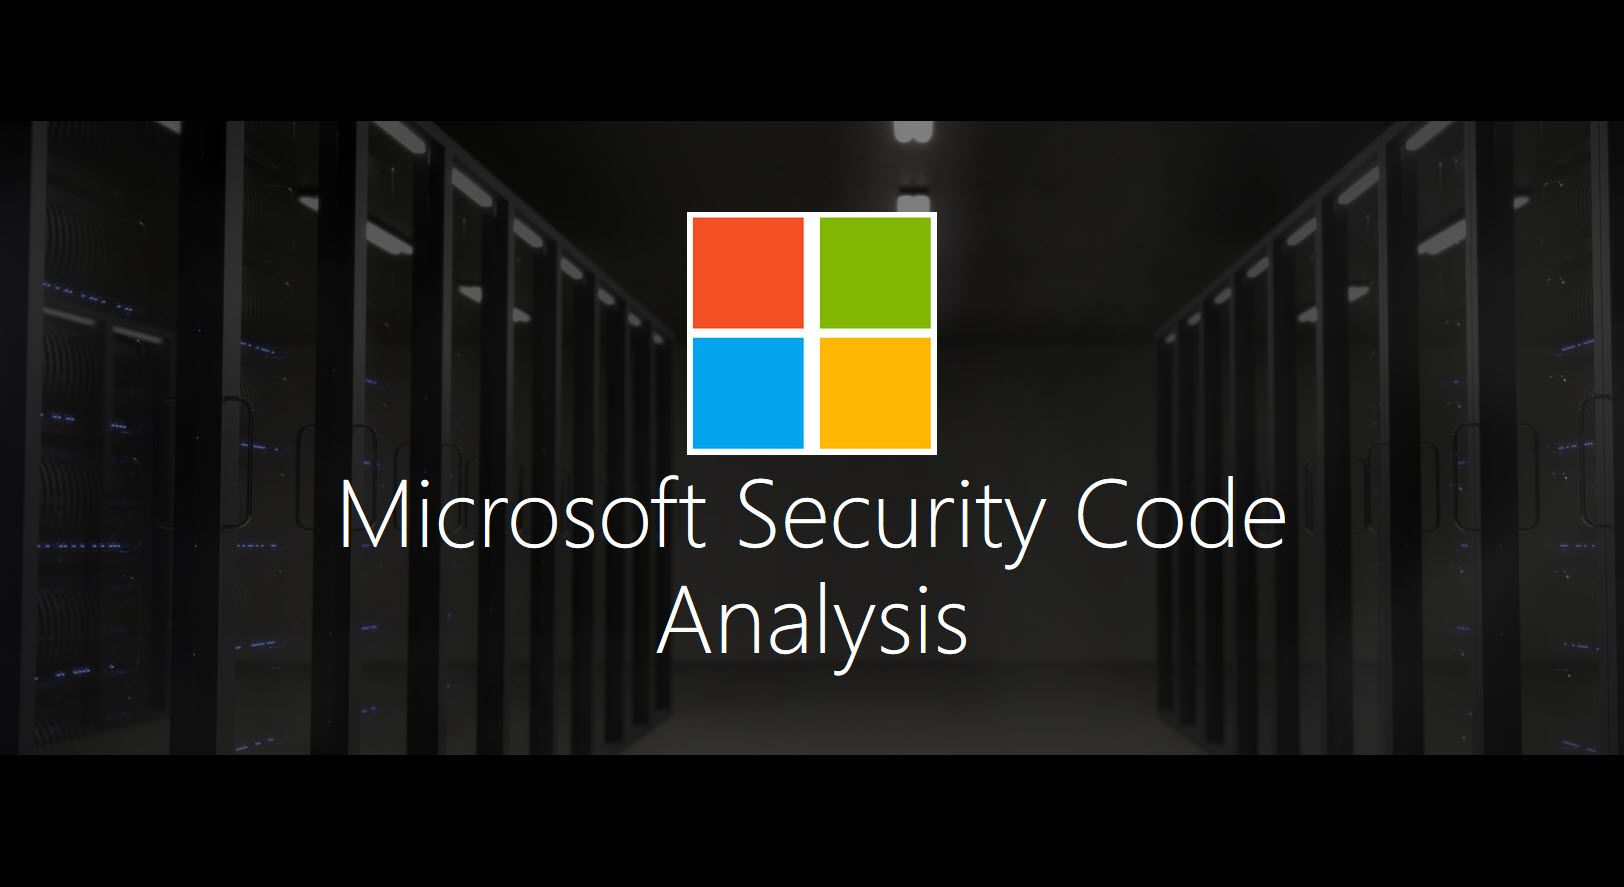 Automate Azure DevOps code security analysis with the Microsoft Security Code Analysis extensions